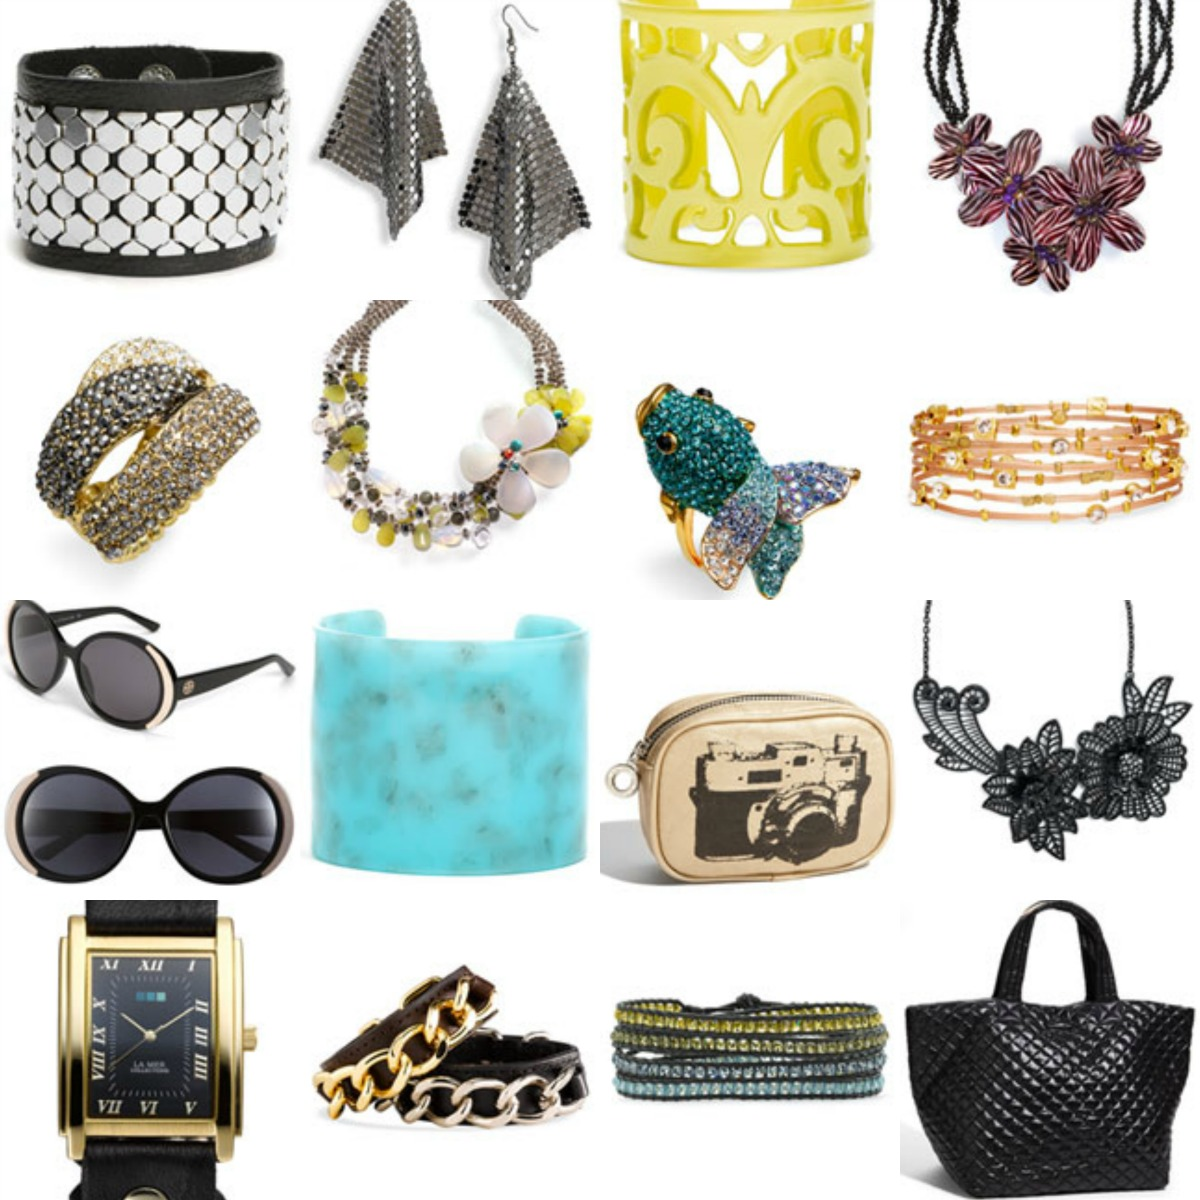 Accessories✨ If you carry around a purse they think of high maintenance, and book you are cool.